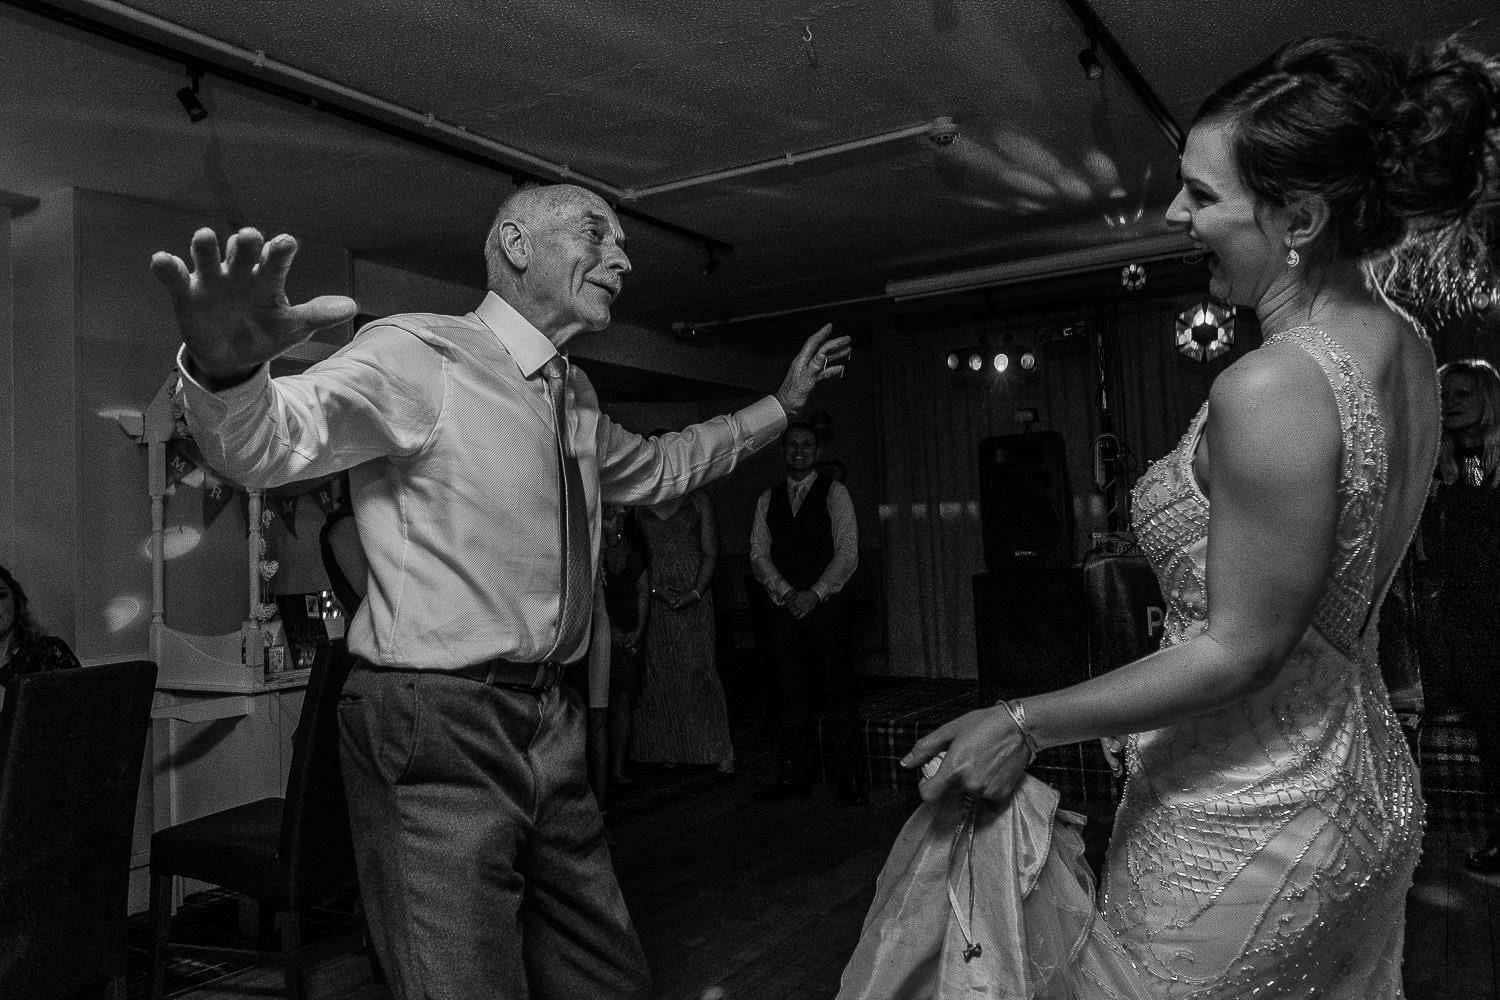 Dad dances with the bride